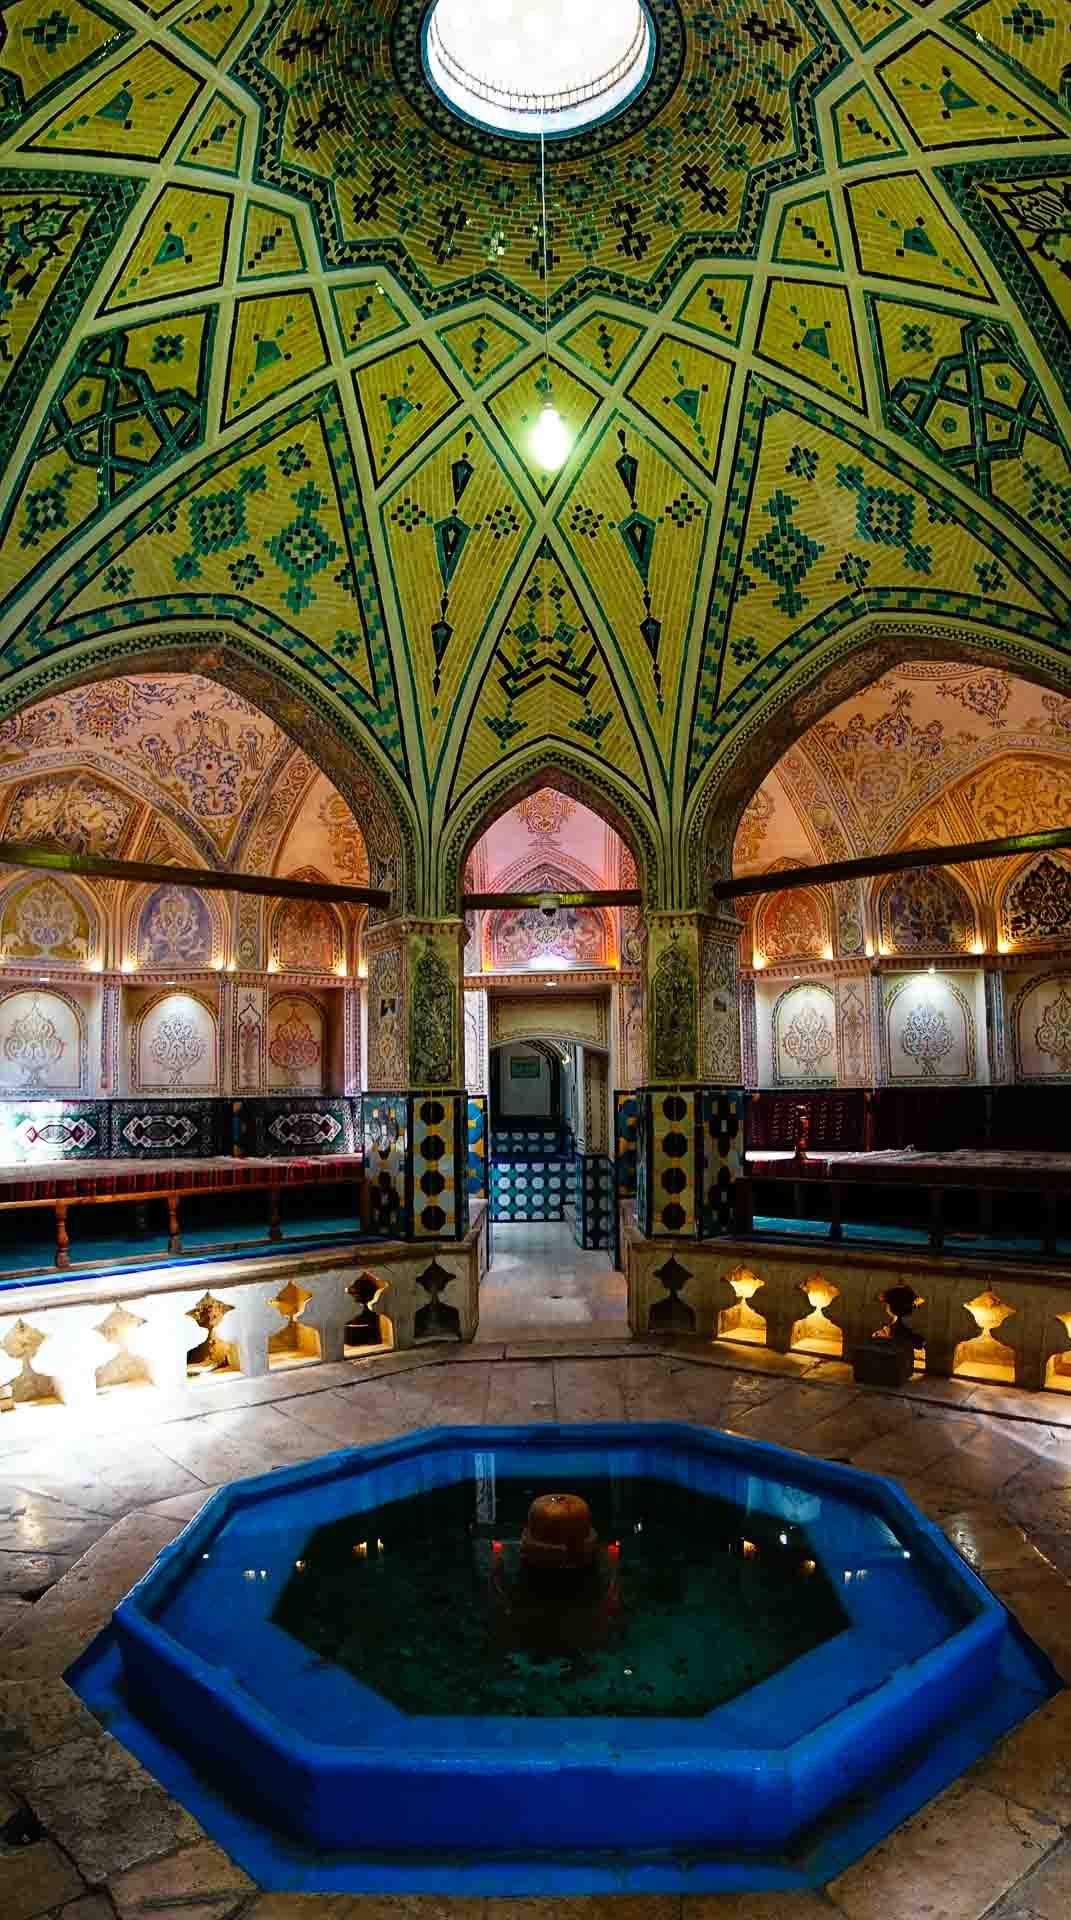 Sultan Amir Ahmad Bathhouse inside 2, kashan, iran, pescart, photo blog, travel blog, blog, photo travel blog, enrico pescantini, pescantini